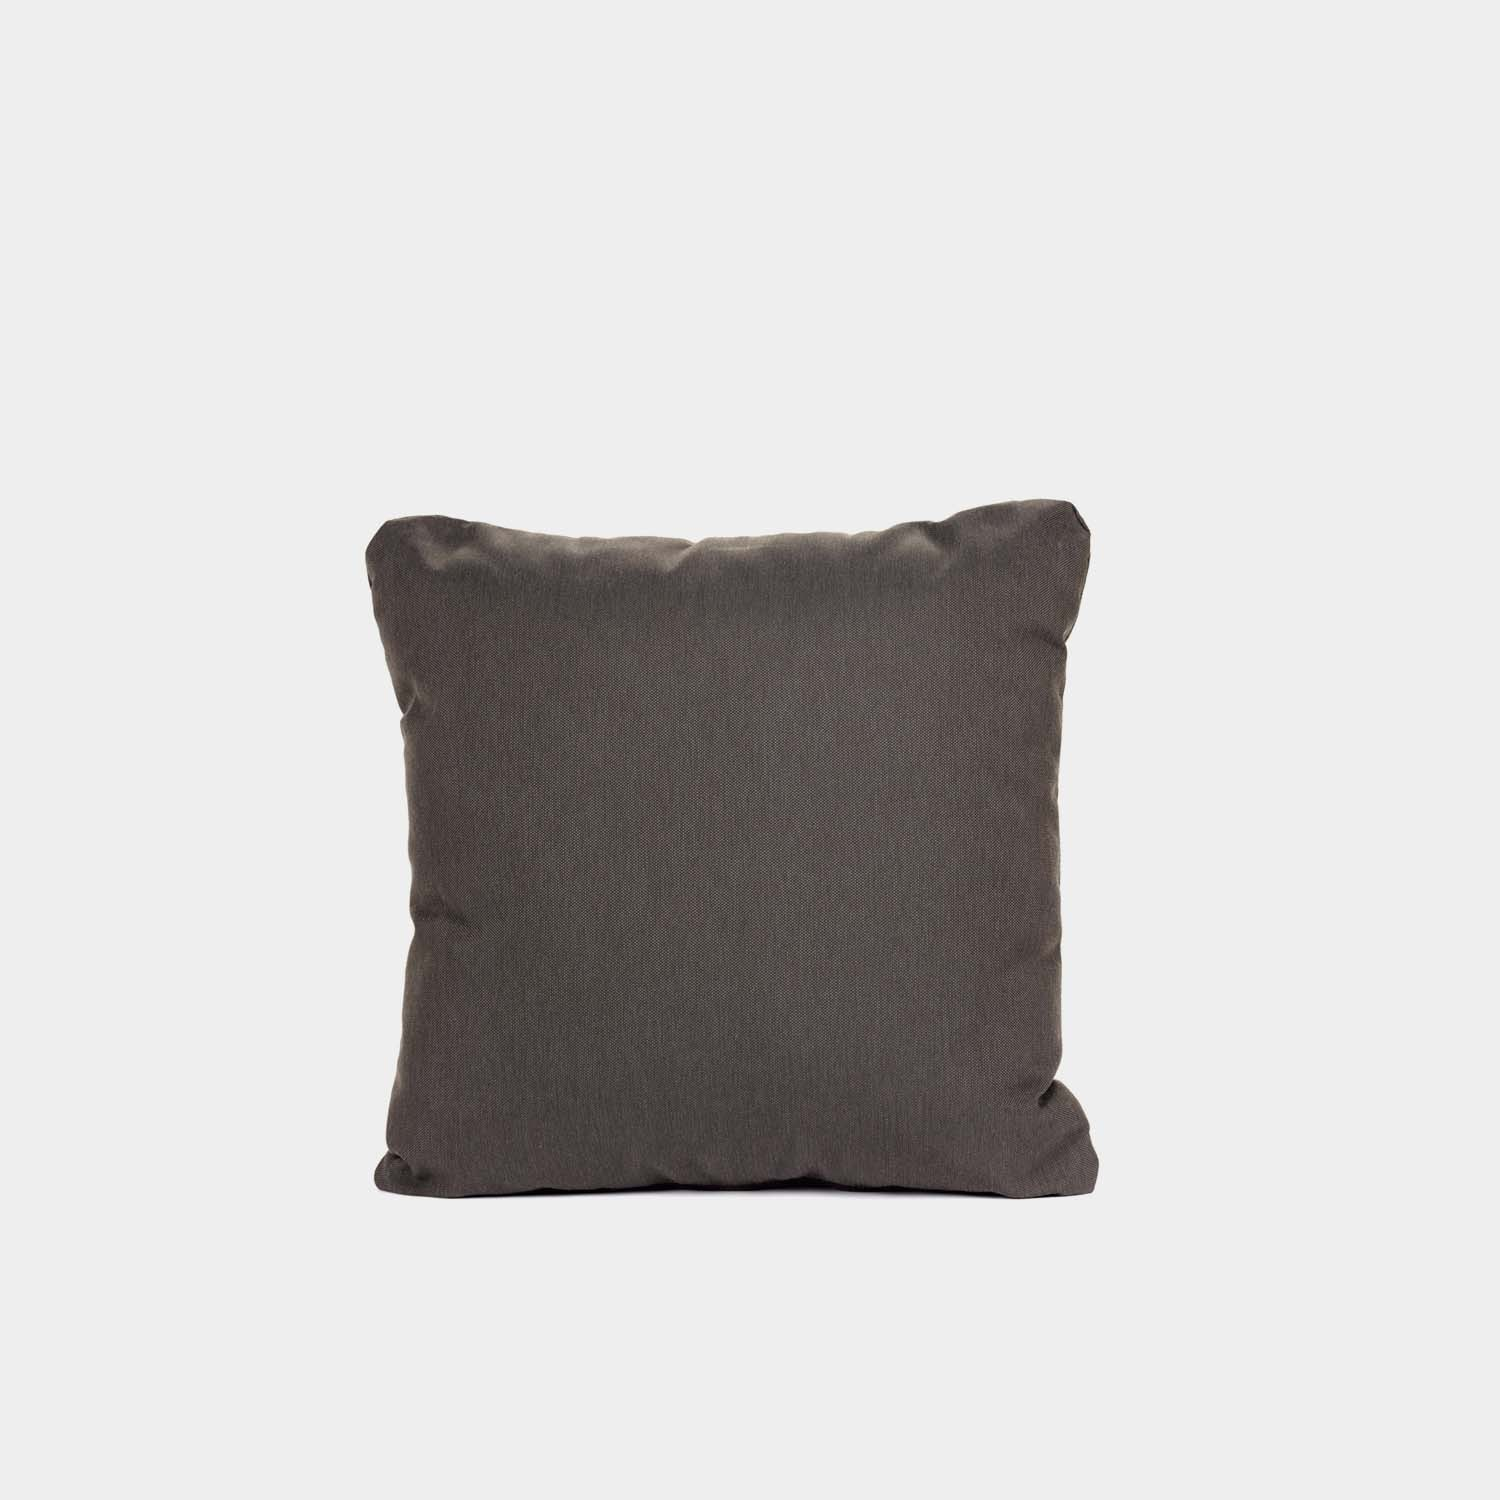 Decorative Cushion, Square, Outdoor, Black Brown